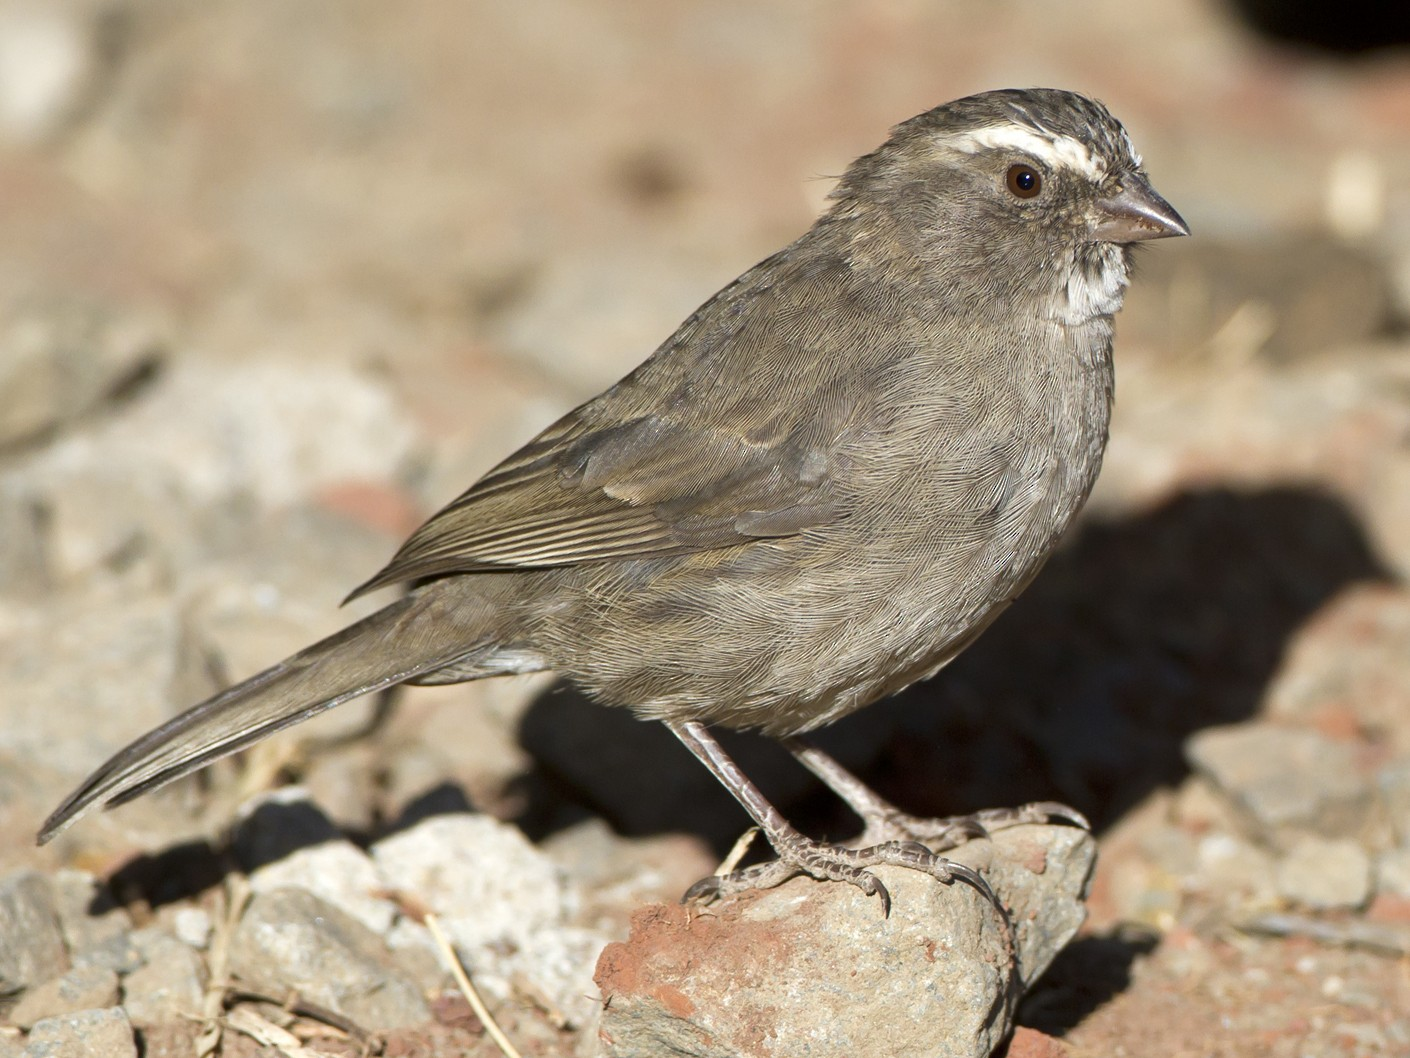 Brown-rumped Seedeater - Marco Valentini